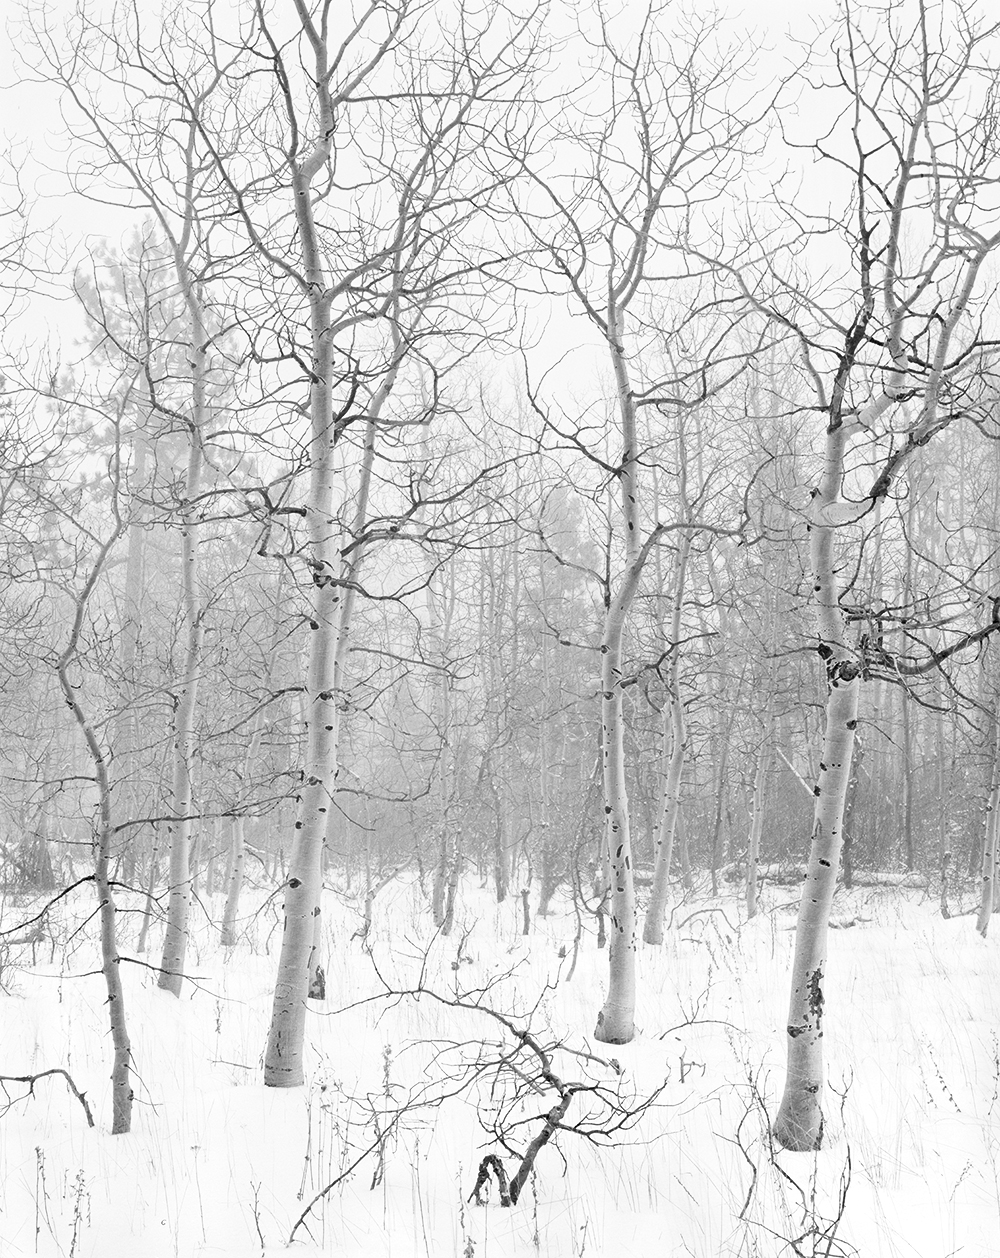 Aspens in Blizzard